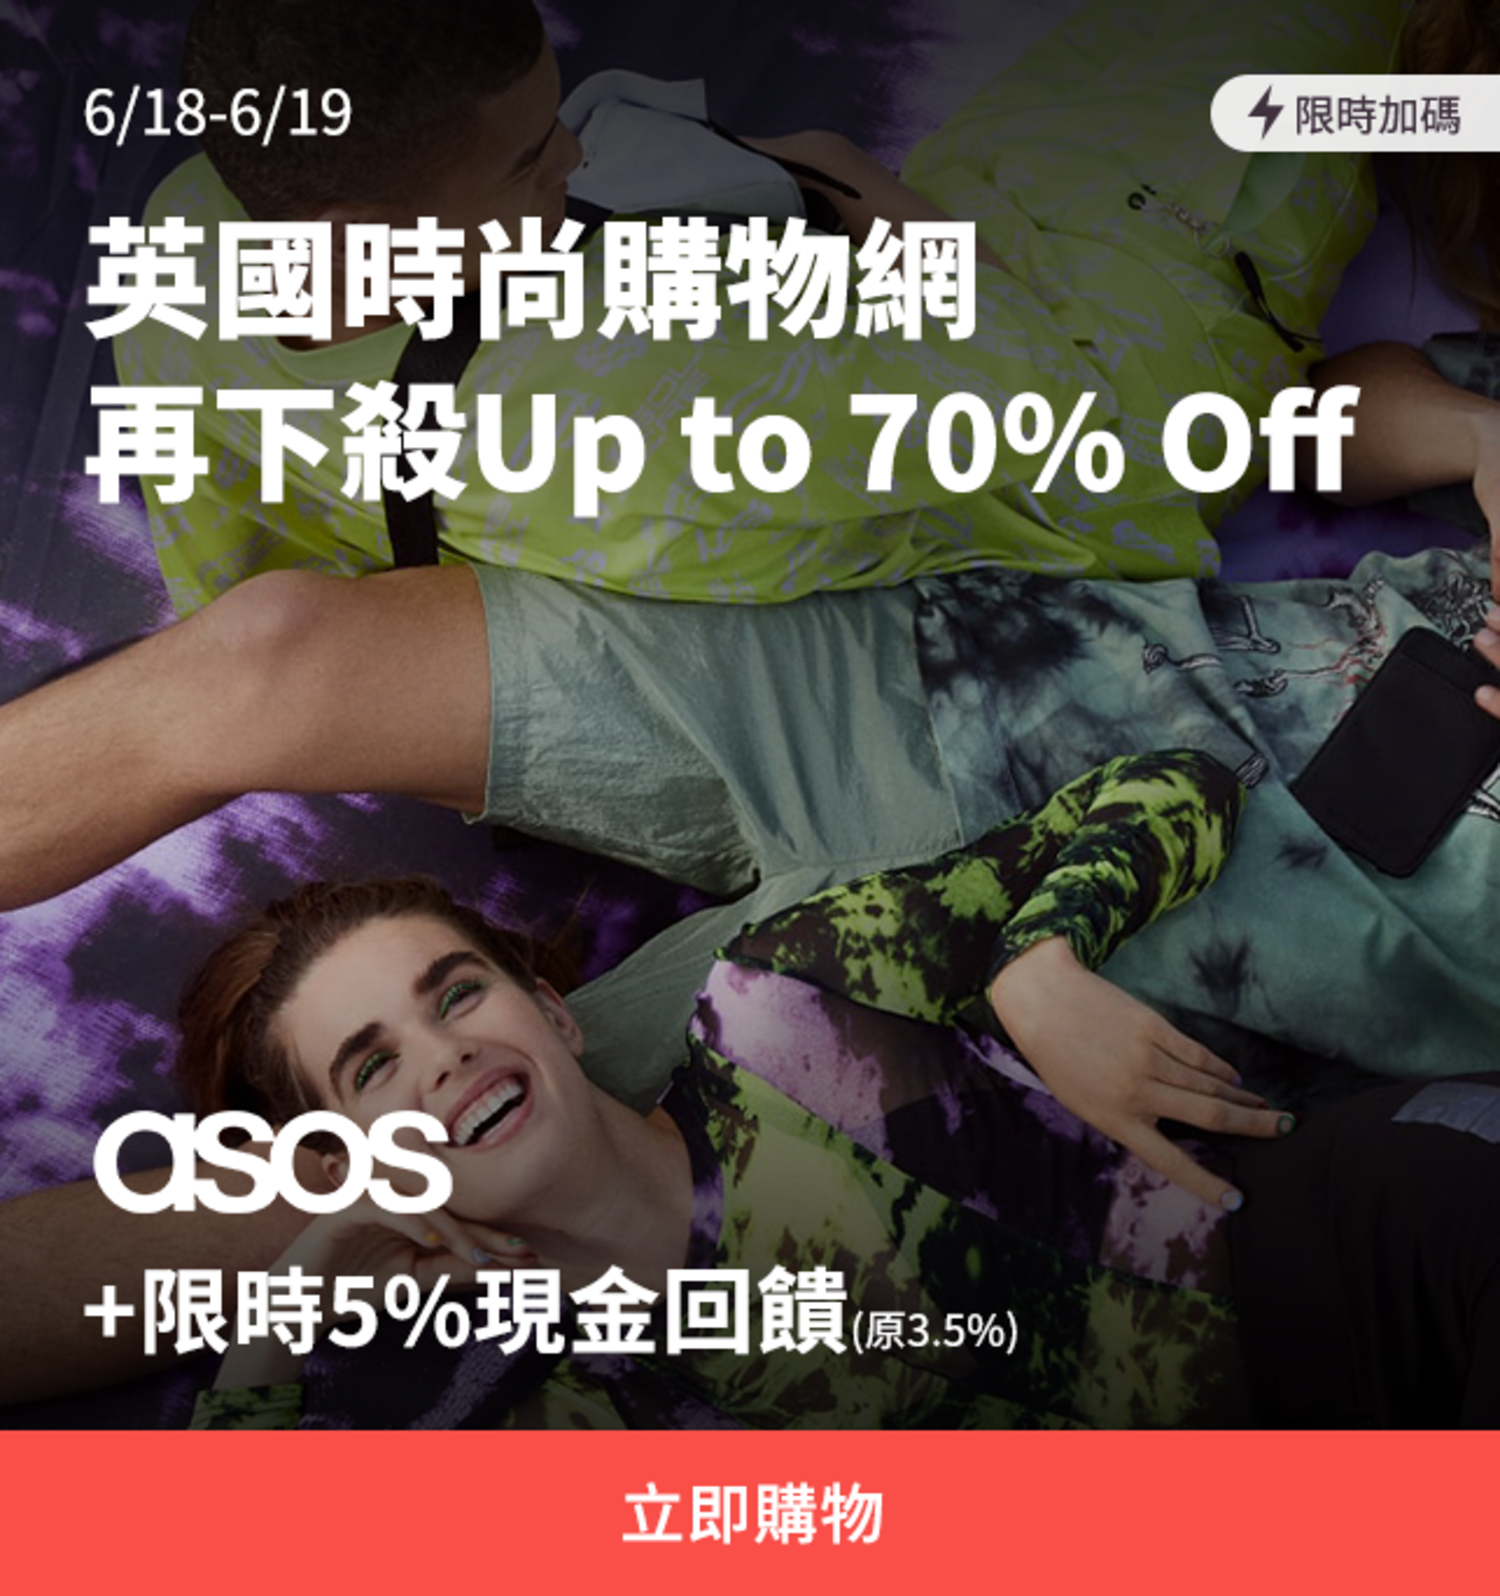 ASOS 限時5%現金回饋+Up to 70% Off 0618-0619